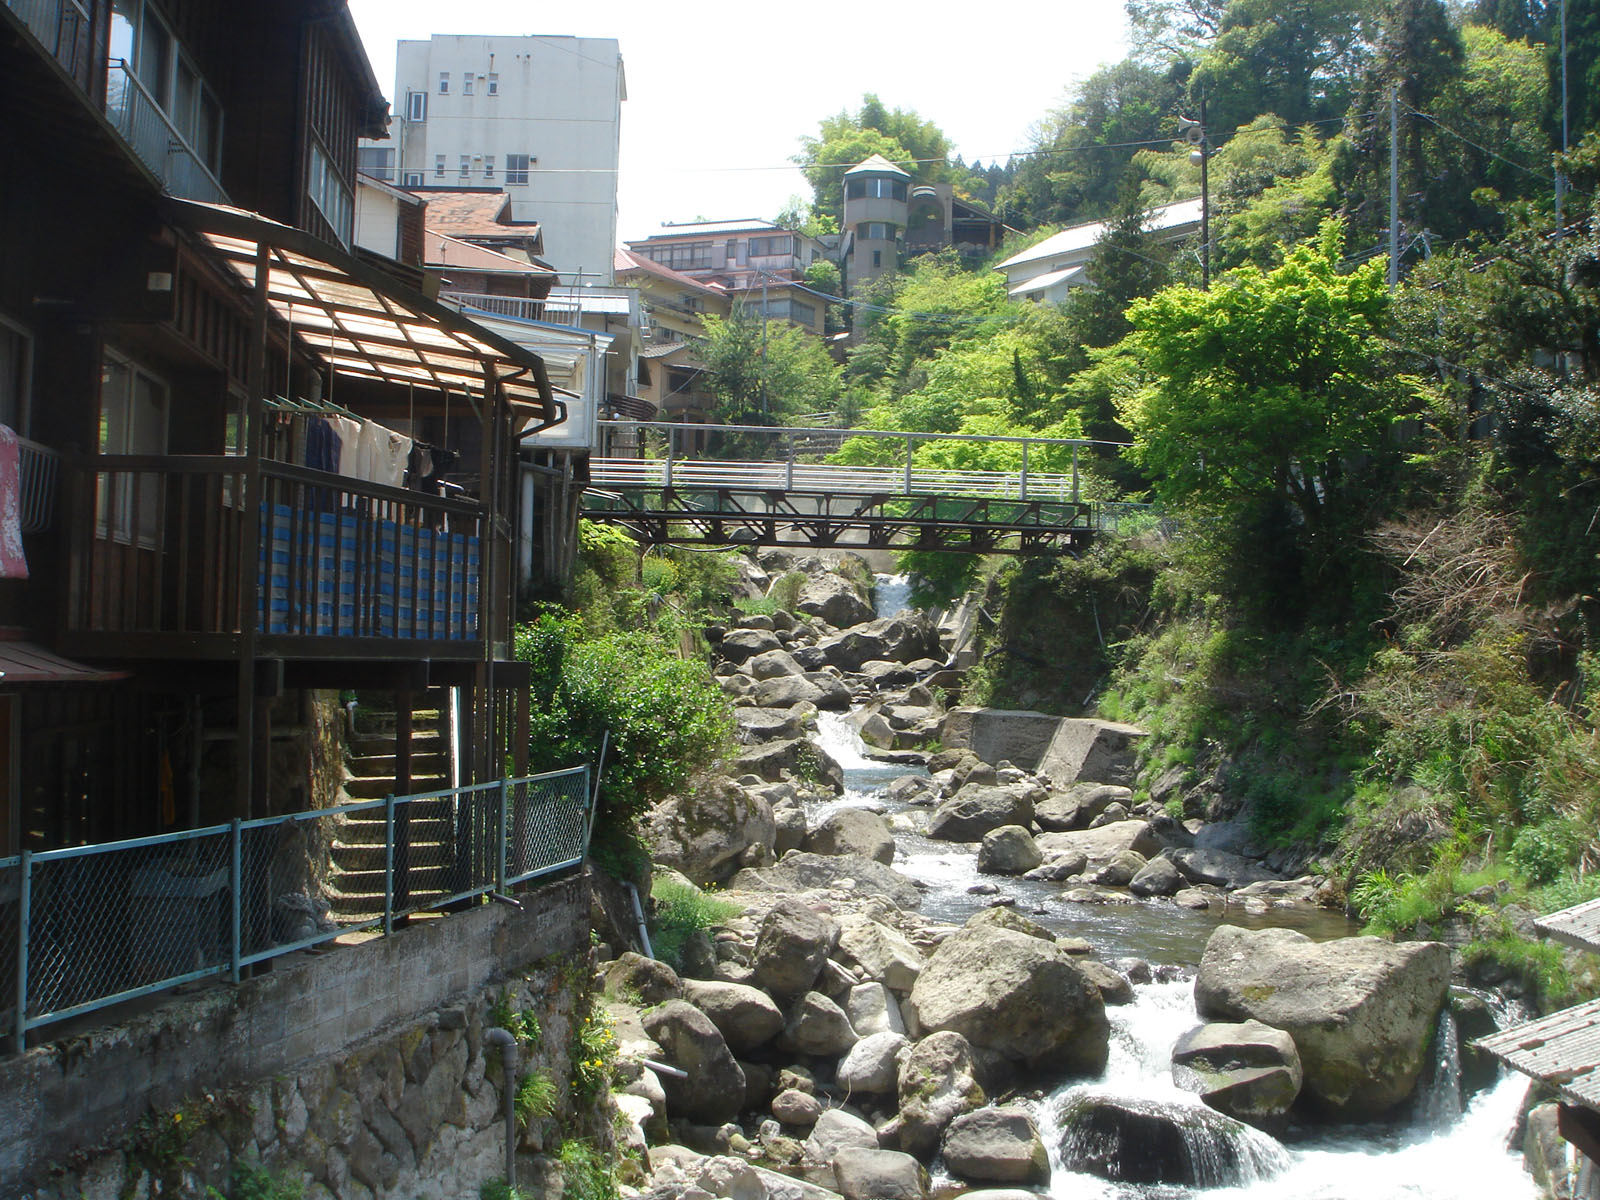 https://upload.wikimedia.org/wikipedia/commons/f/f7/Yunohira_onsen.jpg